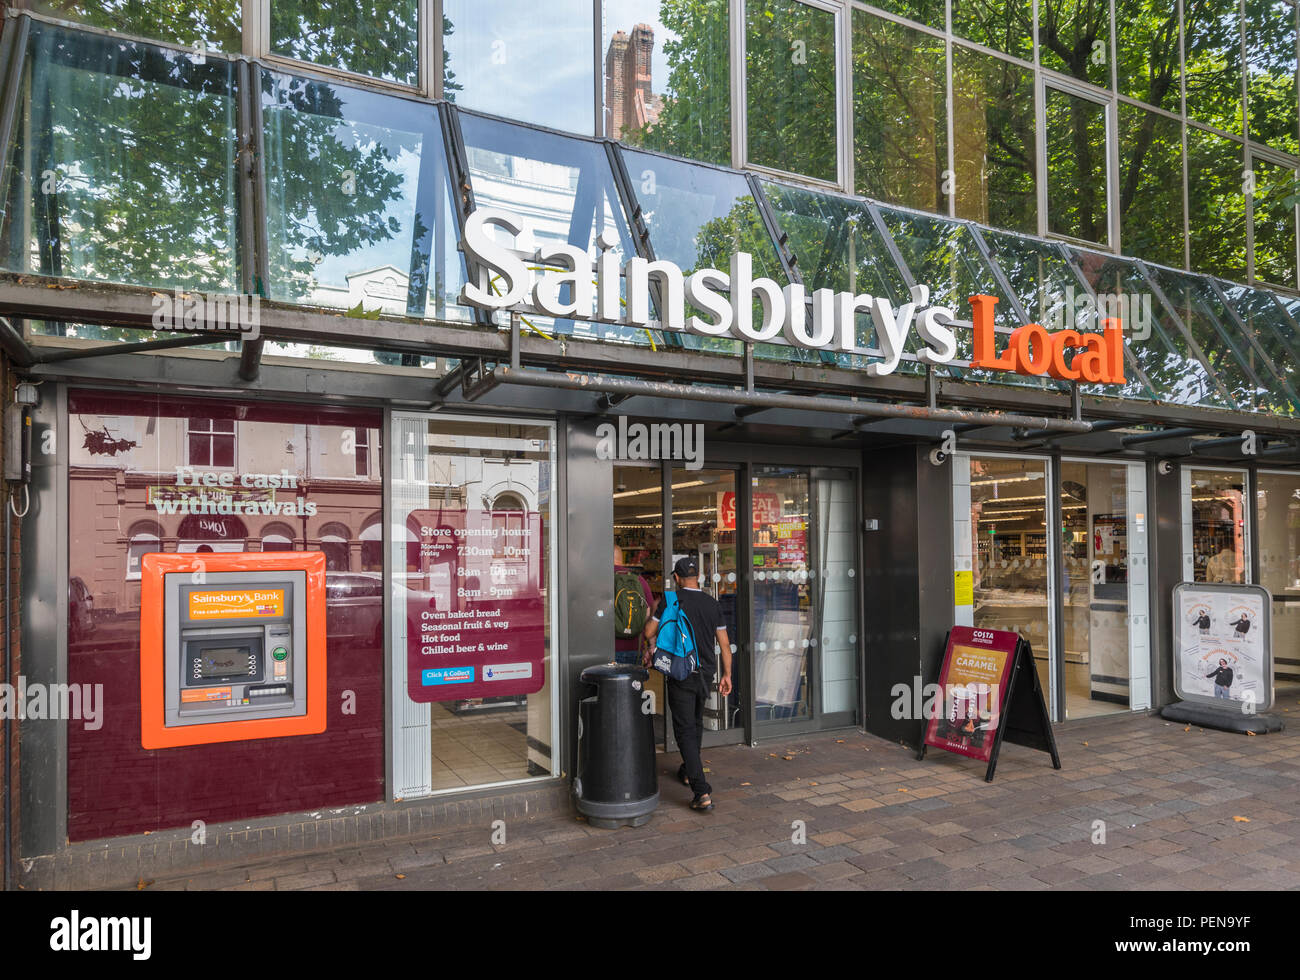 Magasin Sainsbury's entrée avant de Portsmouth, Hampshire, England, UK. Sainsburys store front UK. Supermarché Sainsbury épicerie store. Photo Stock